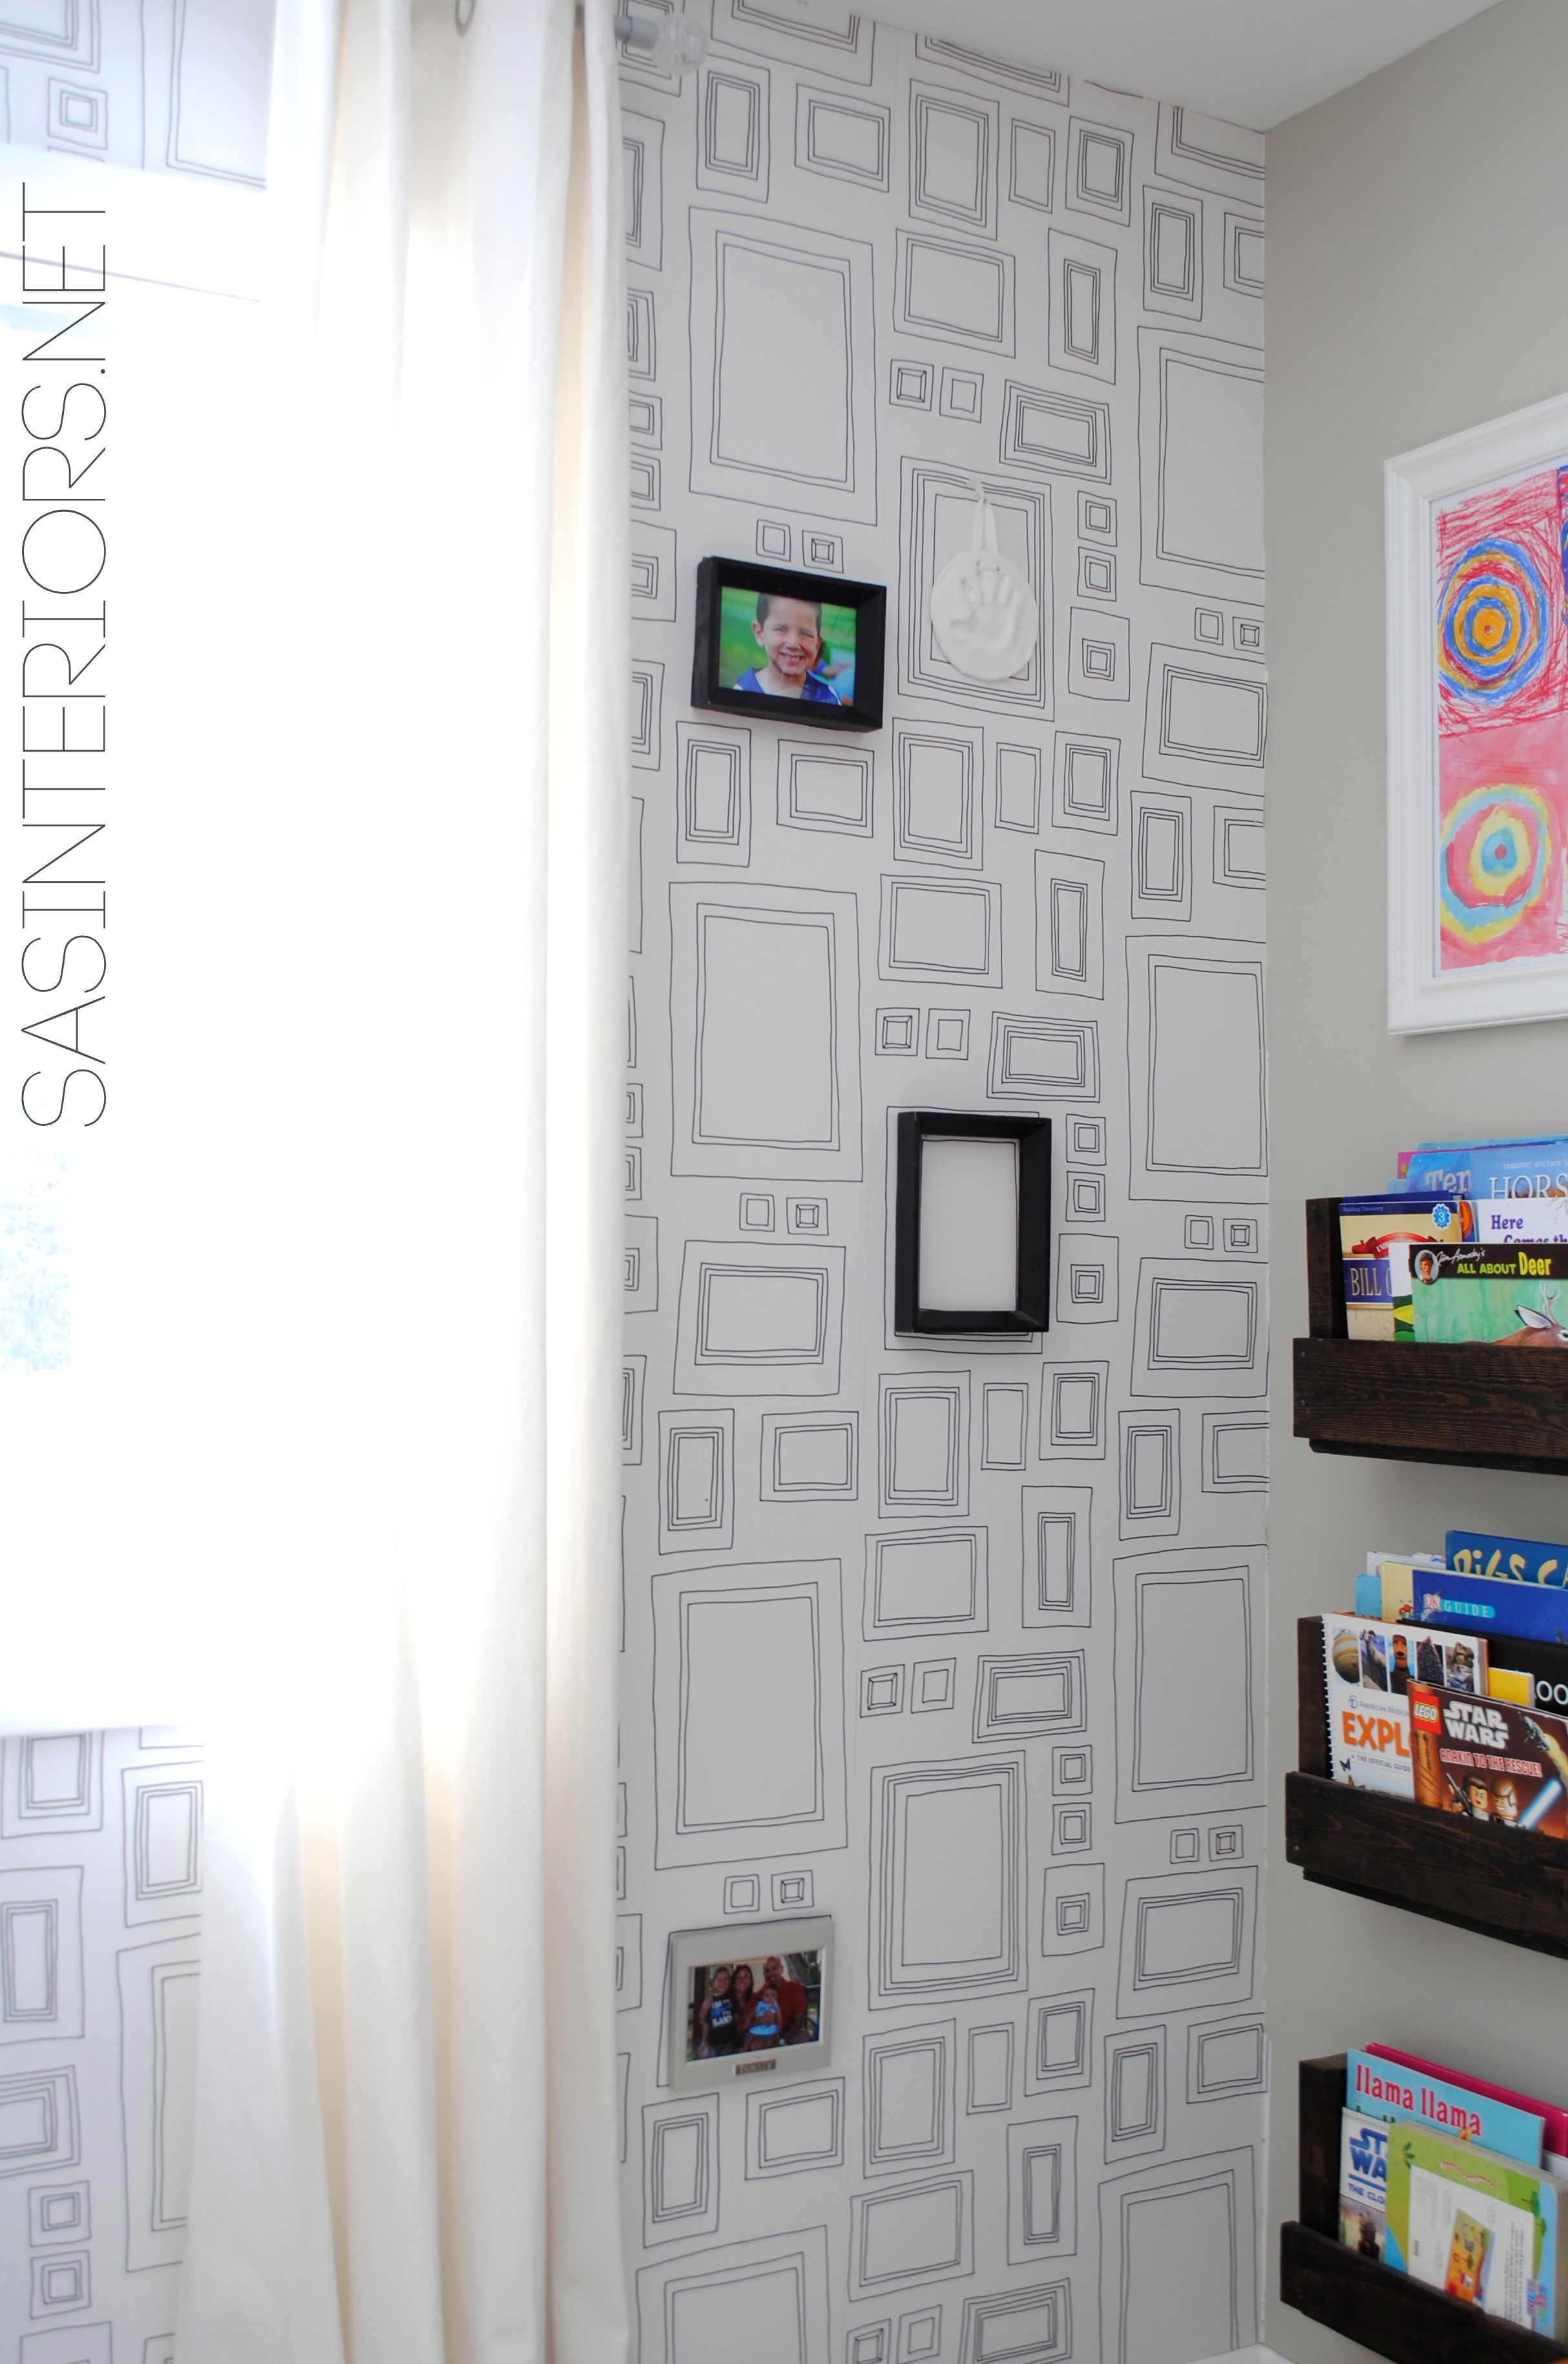 Tutorial Tips Tricks For Hanging Wallpaper Do It Yourself But Get The Results Of A Pro Splurge On How To Hang Wallpaper Photo Wall Gallery Gallery Wall